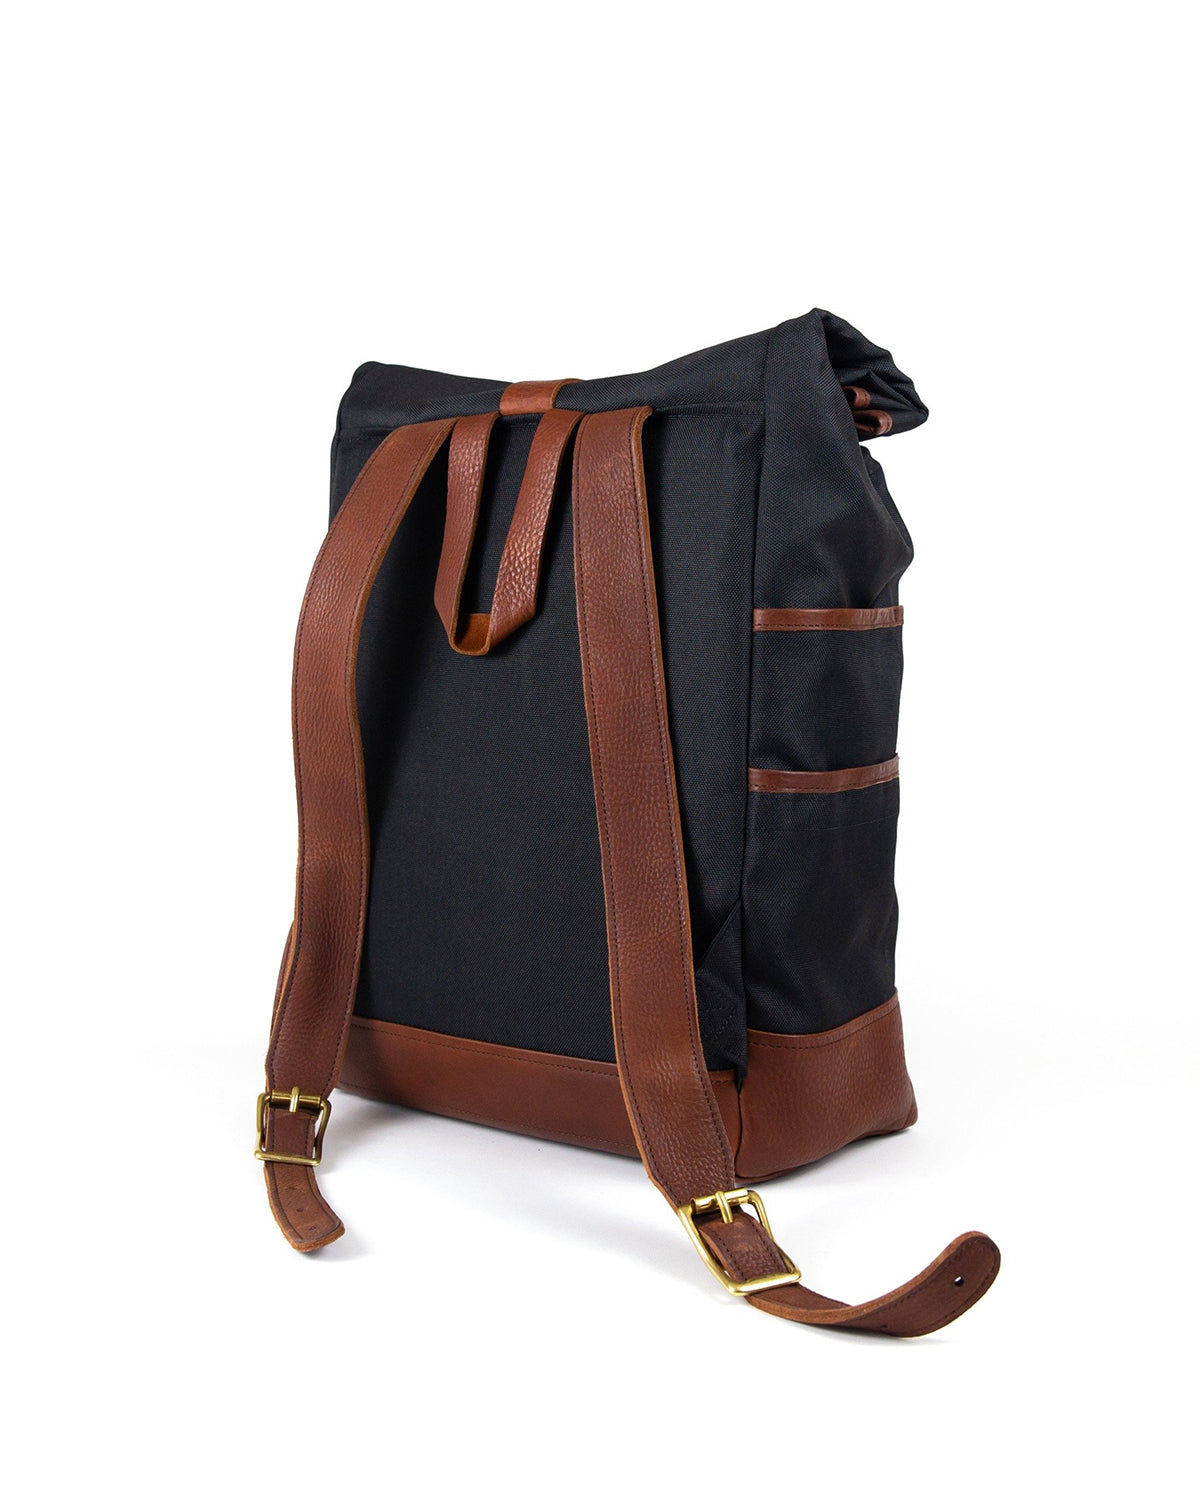 Weekender in Black with Brown Leather